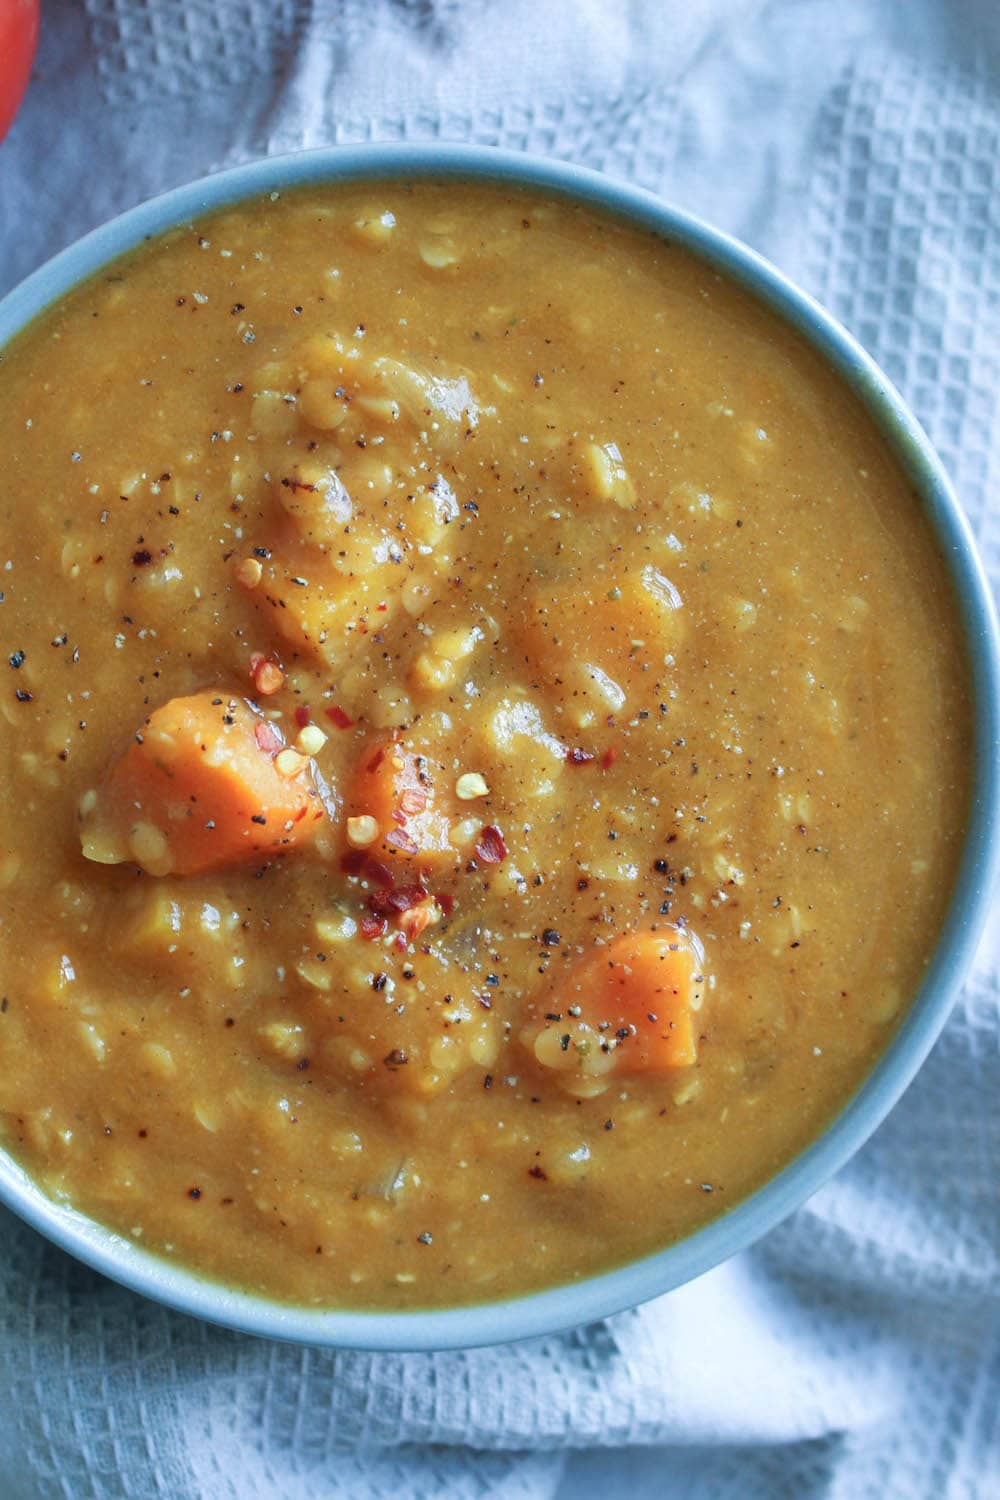 Red Lentil Pumpkin Soup topped with red chili flakes